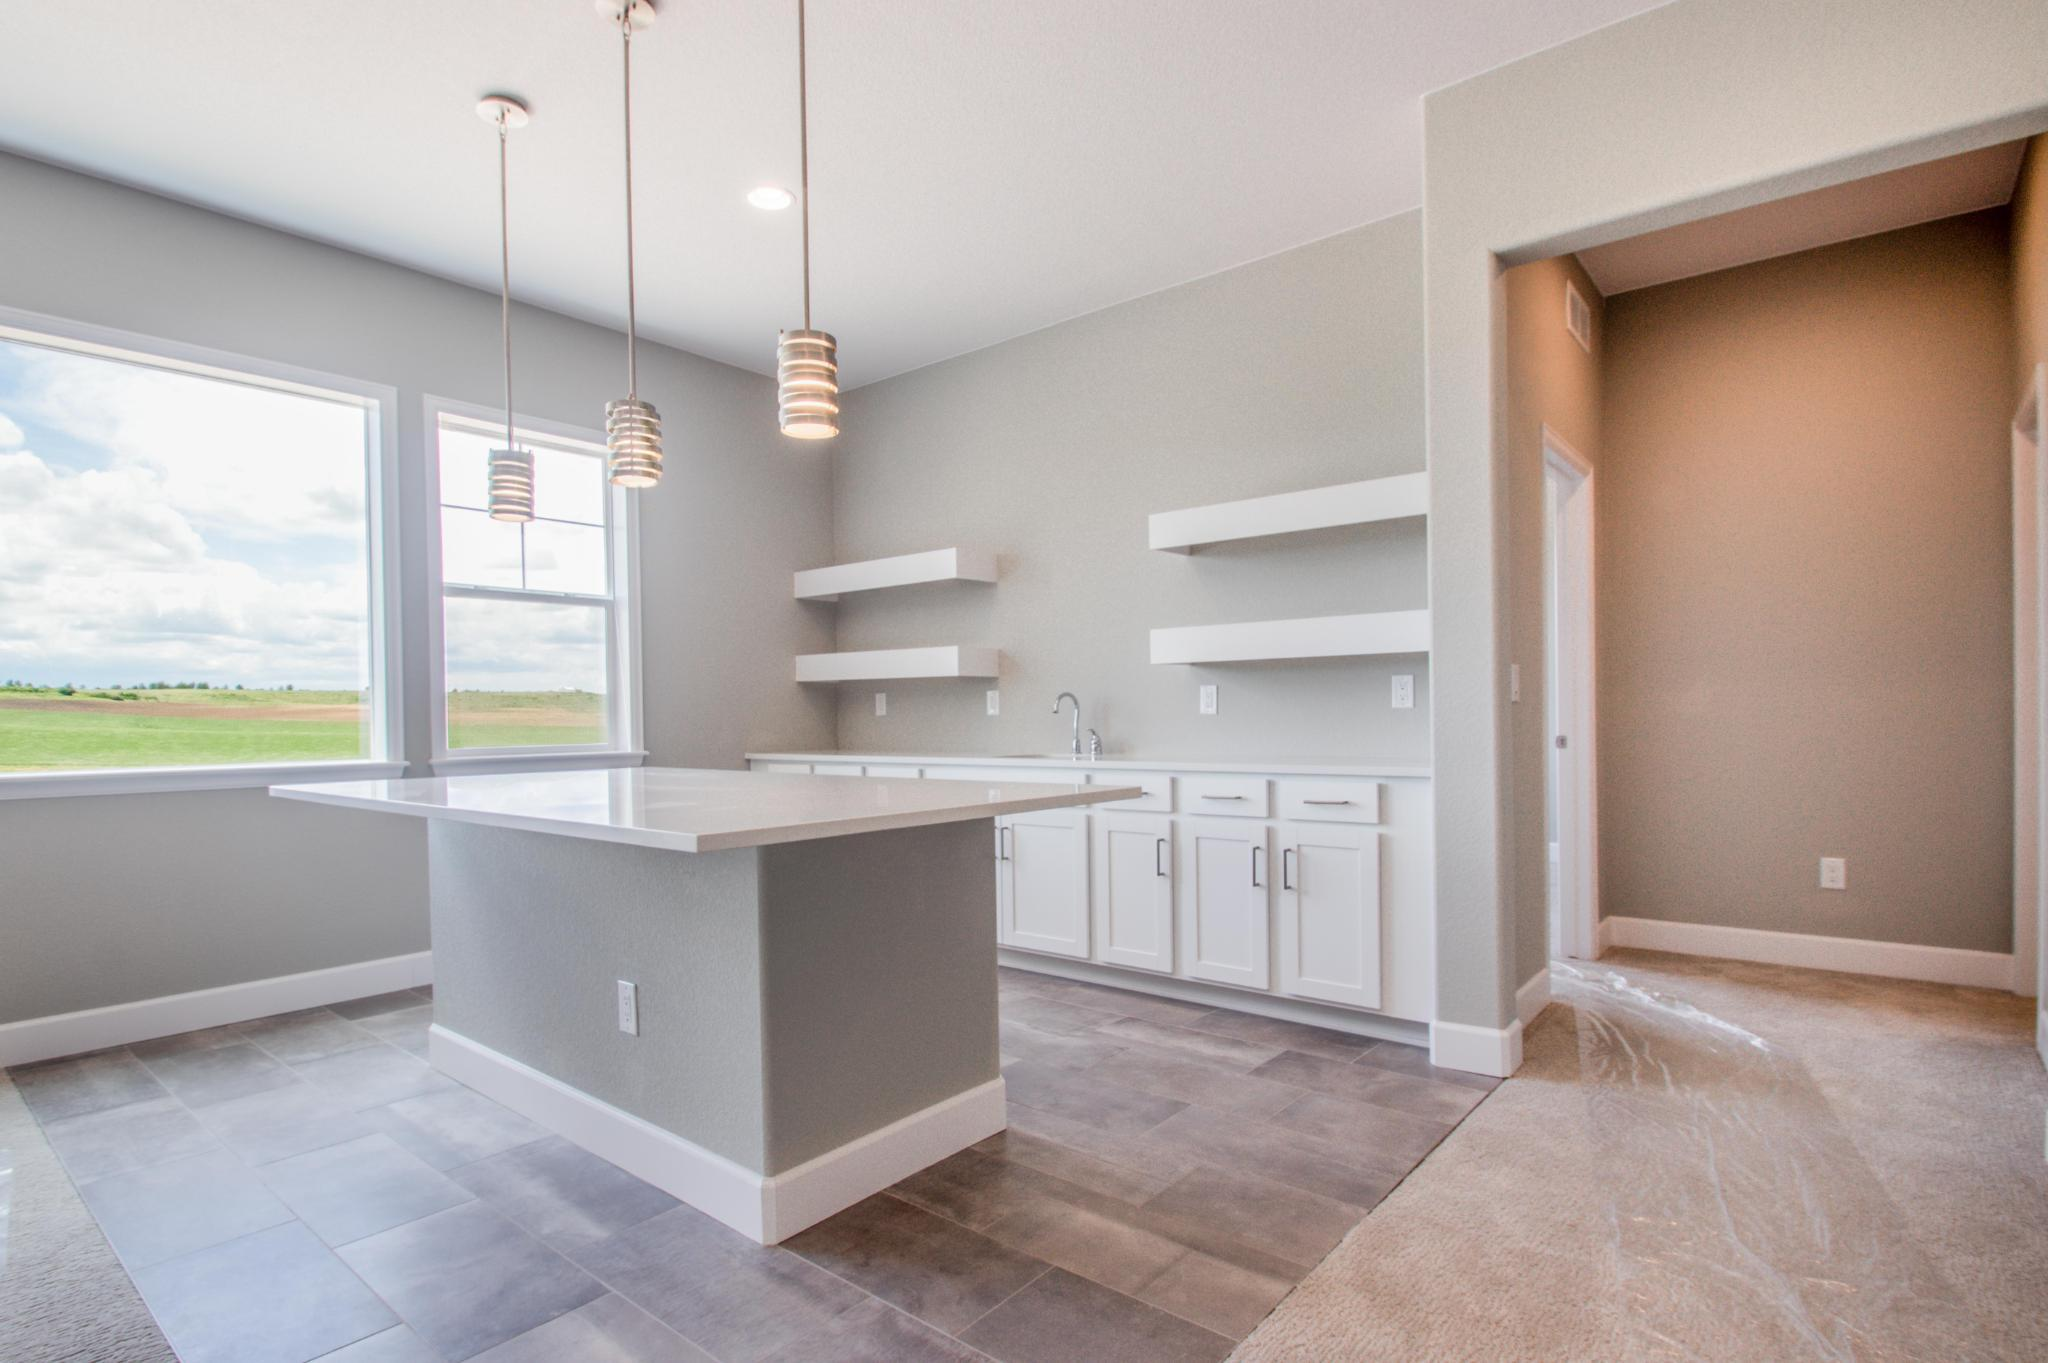 Kitchen featured in the Owen By Lokal Homes in Denver, CO